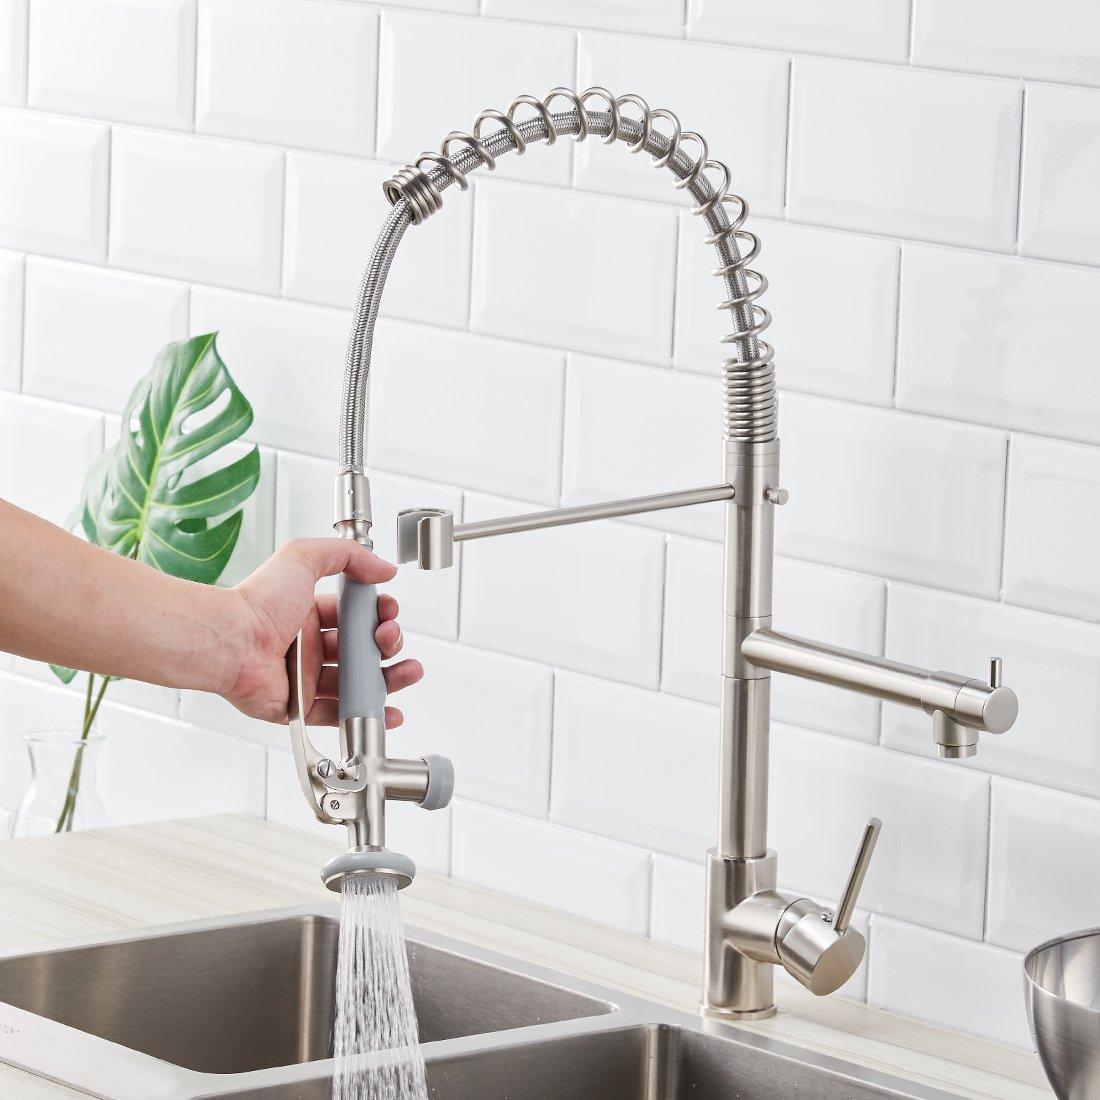 Fapully - Best commercial kitchen faucet